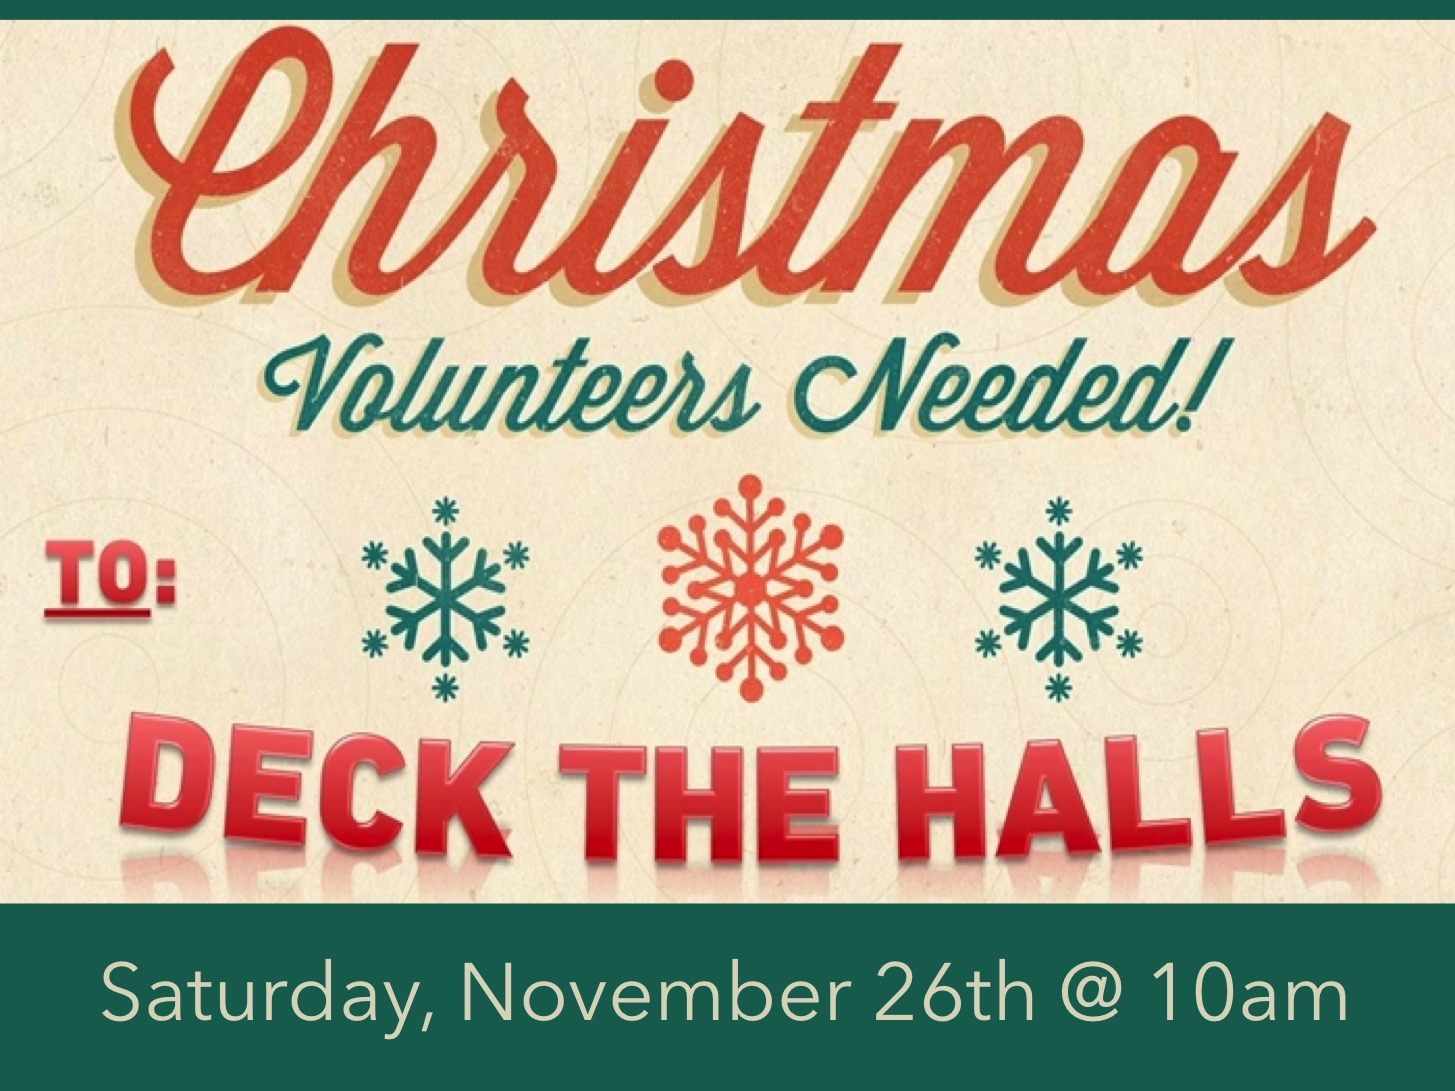 It's time to dress BrookRidge up for Christmas! Lots of hands make light work, so if you have some time on Saturday,November 26th at 10:00am, we would love for you to join us! There is a sign-up sheet in the Fellowship Hall.